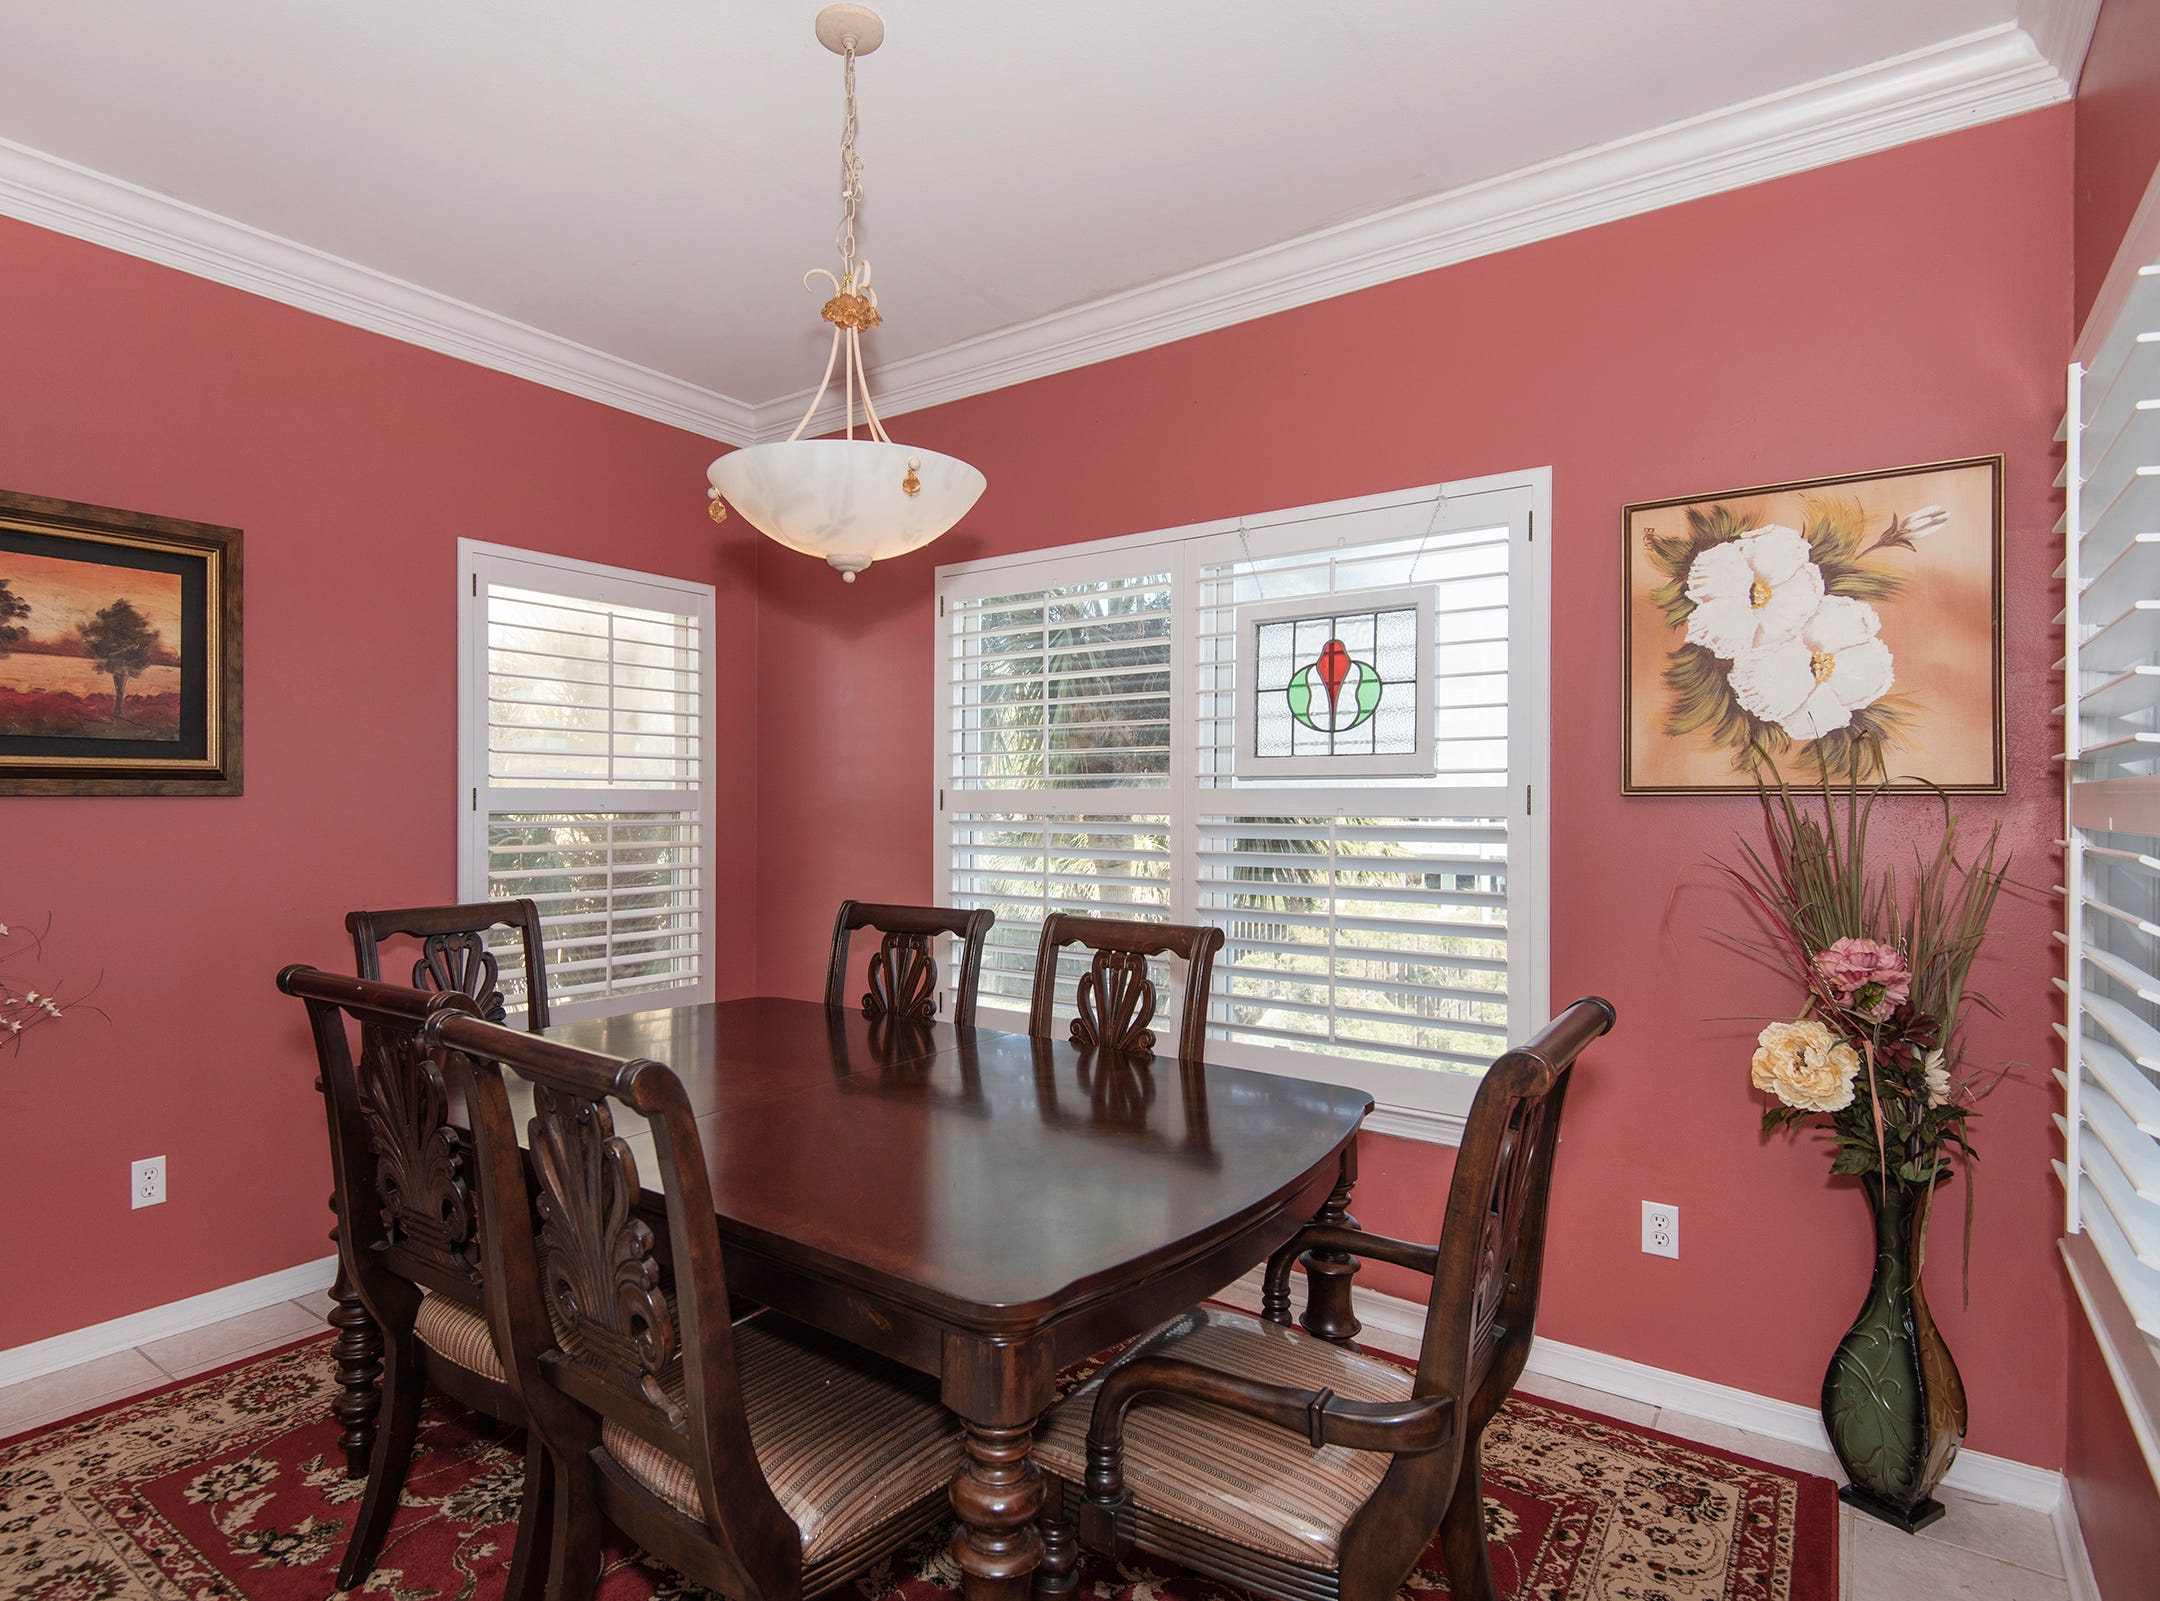 1 La Caribe Dr.The formal dining space.